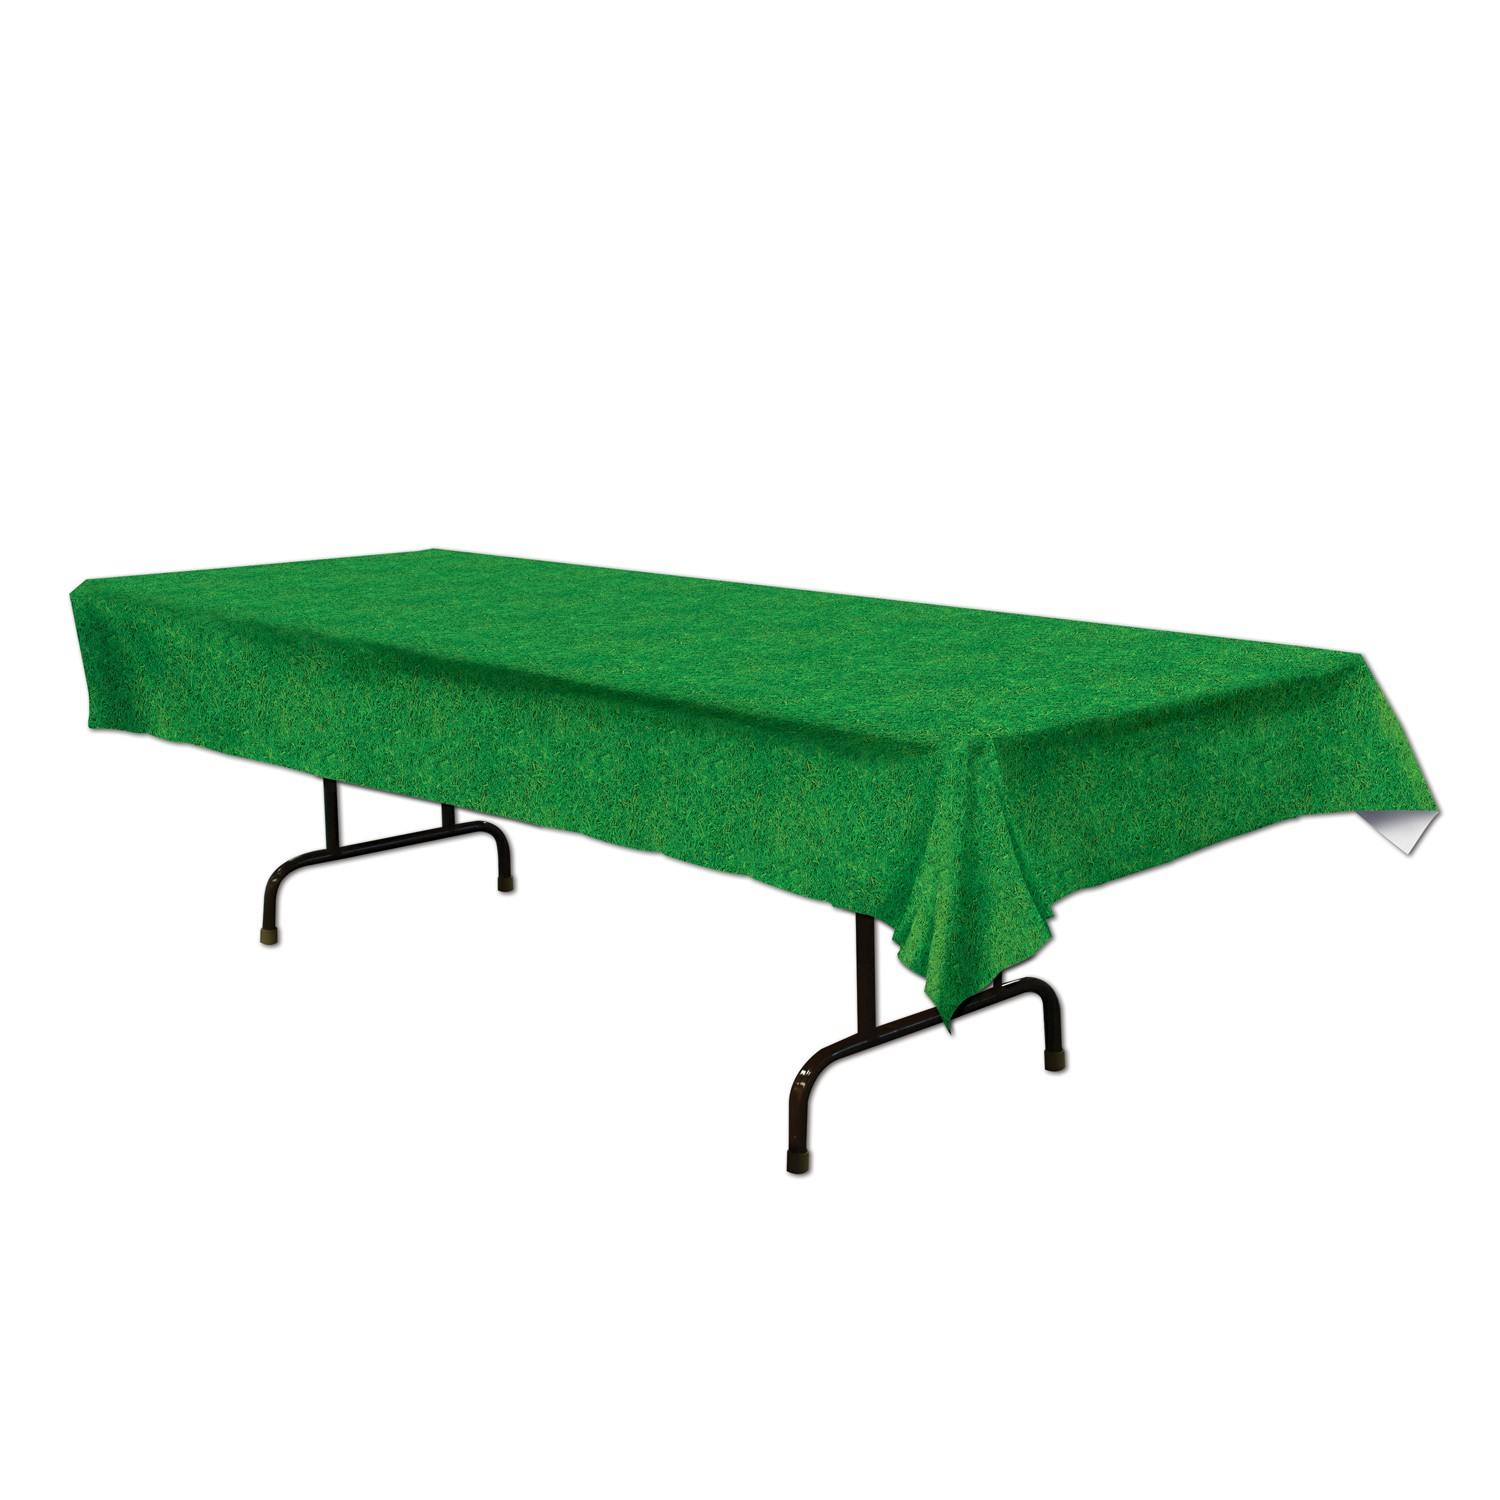 "Grass Table Cover Party Accessory 54"" x 108"" (1 Count) (Pkg/1)"